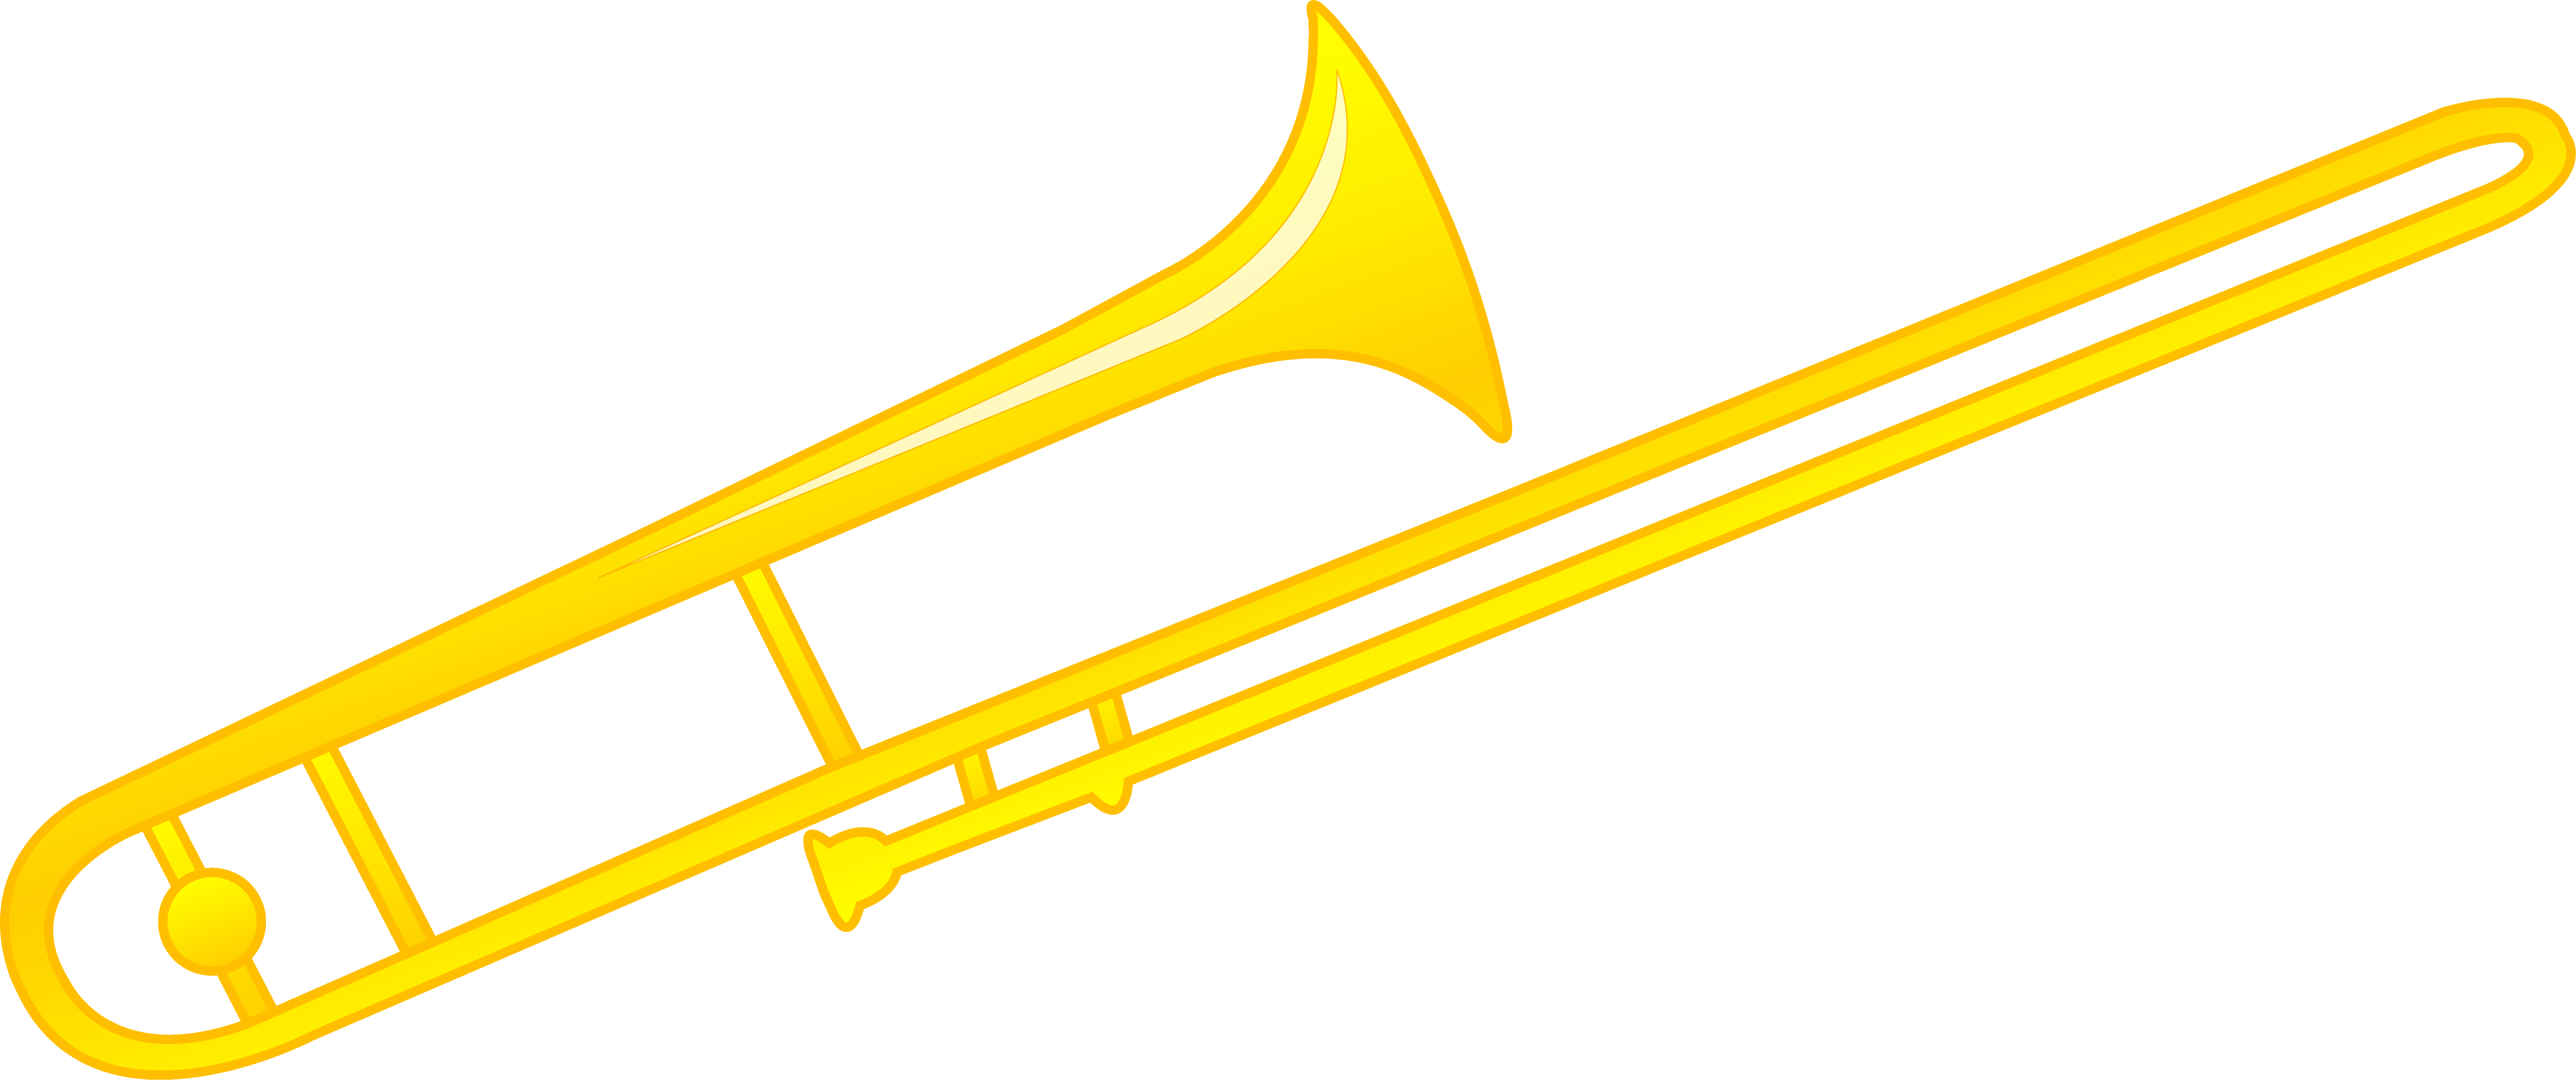 trombone vector animated